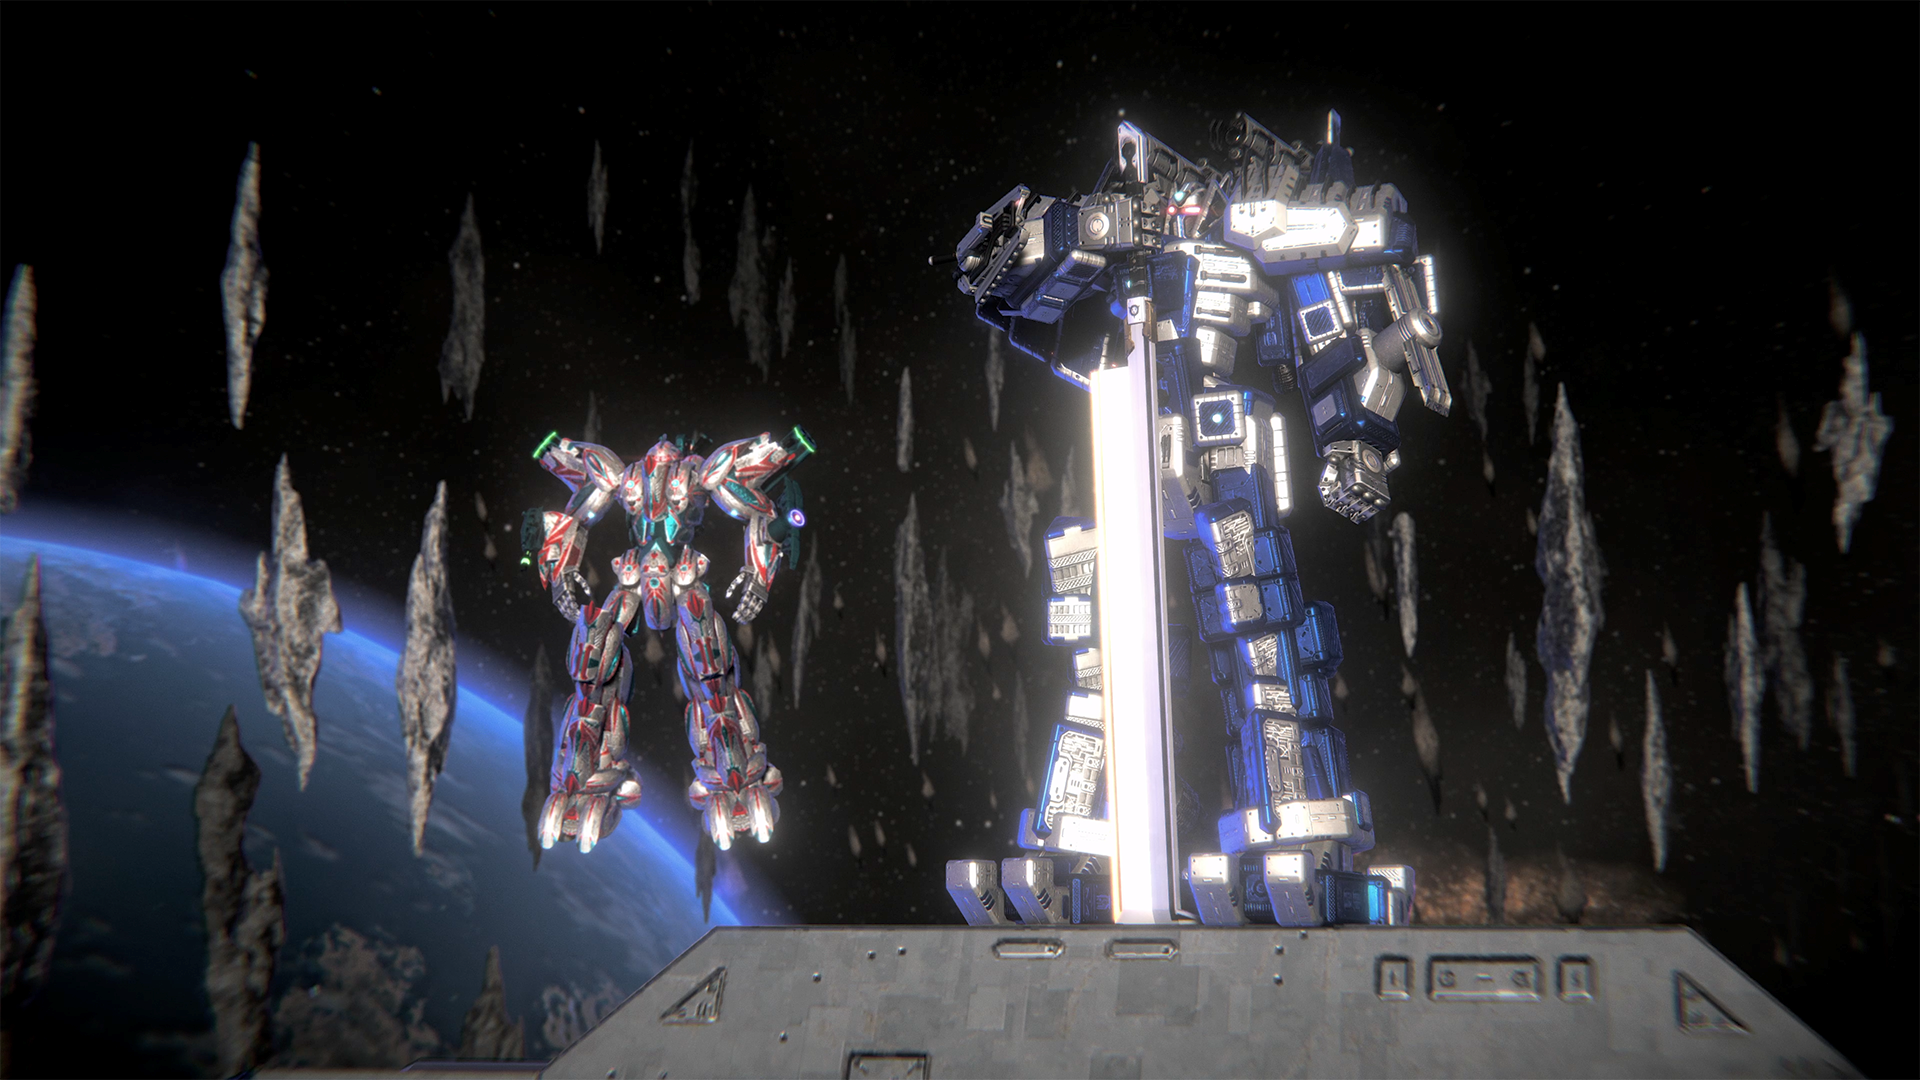 Pilot your very own mecha to defeat the evil Zatros empire!